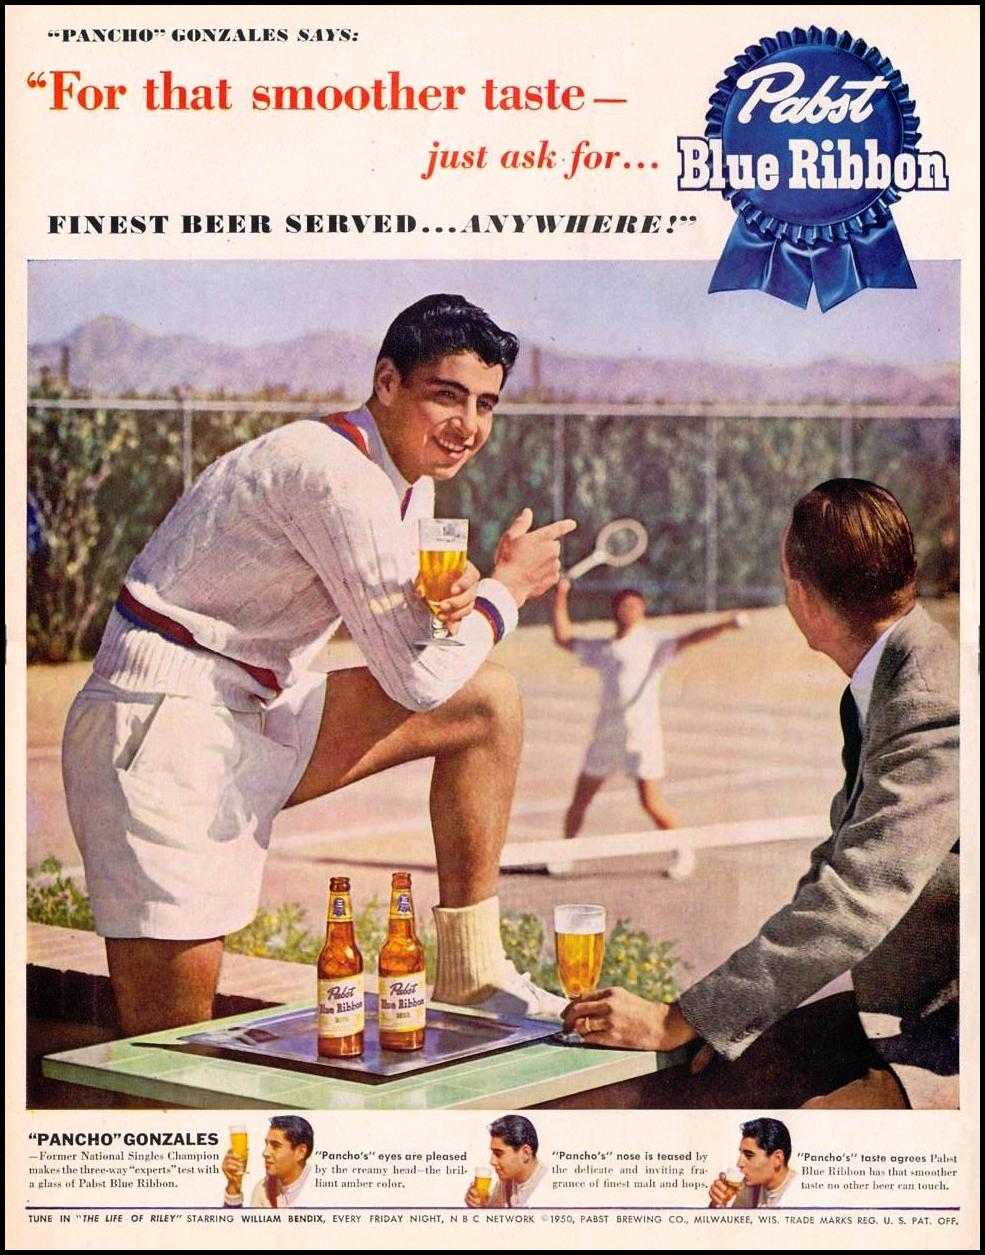 PABST BLUE RIBBON BEER LIFE 06/05/1950 p. 58